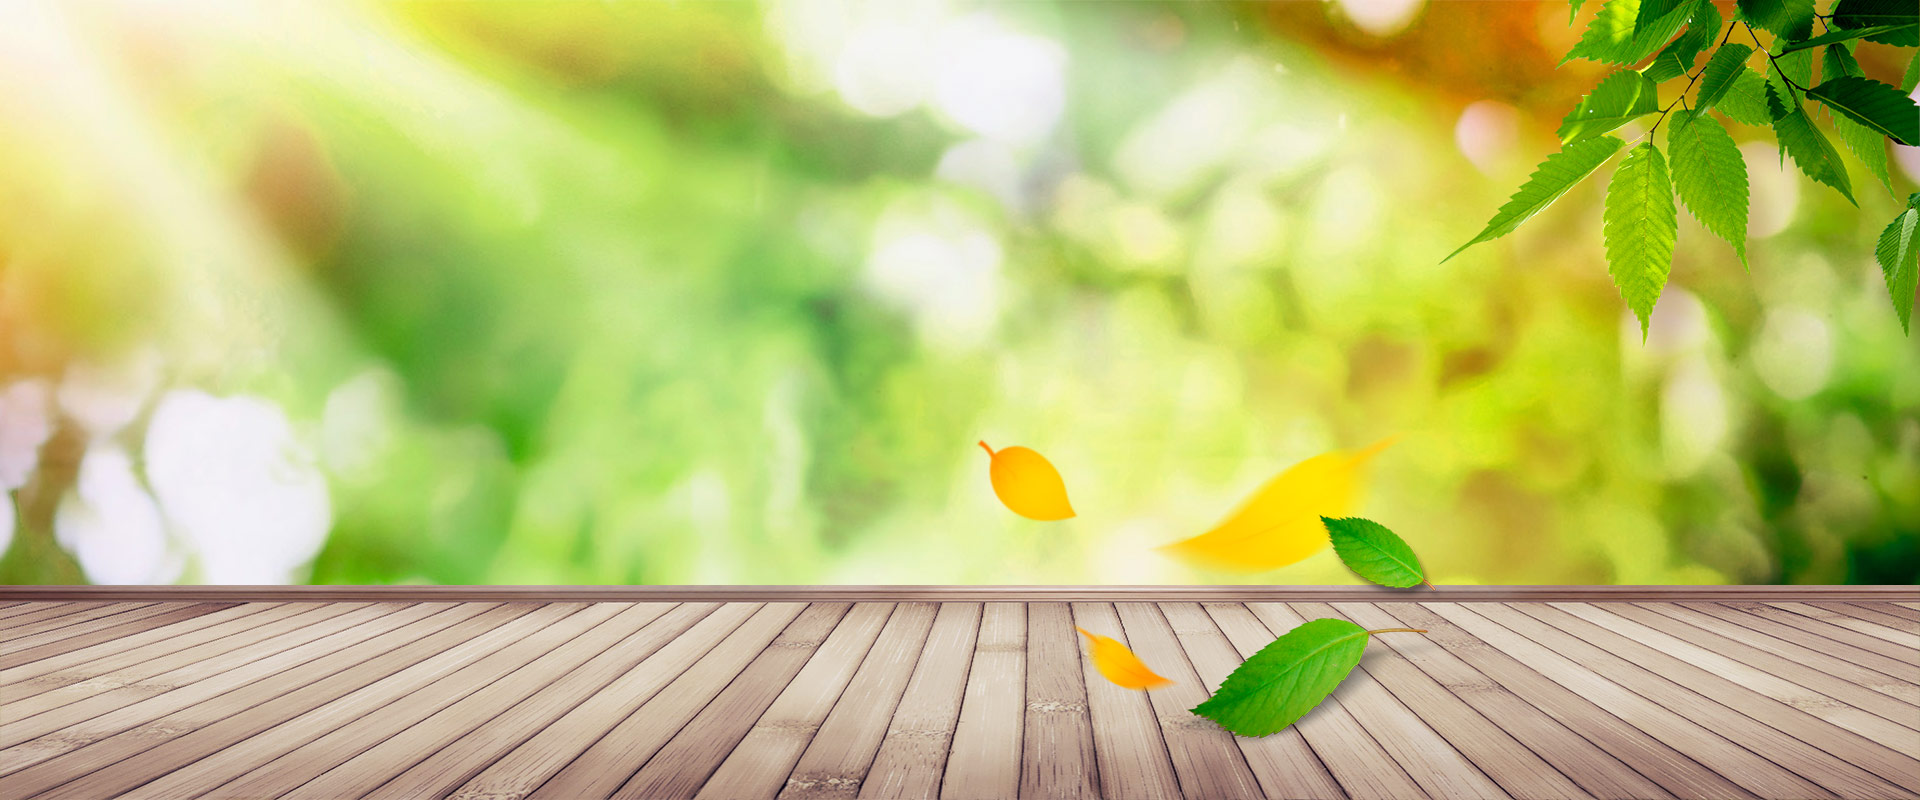 Green Leaves Wood Background, Fresh, Literature And Art